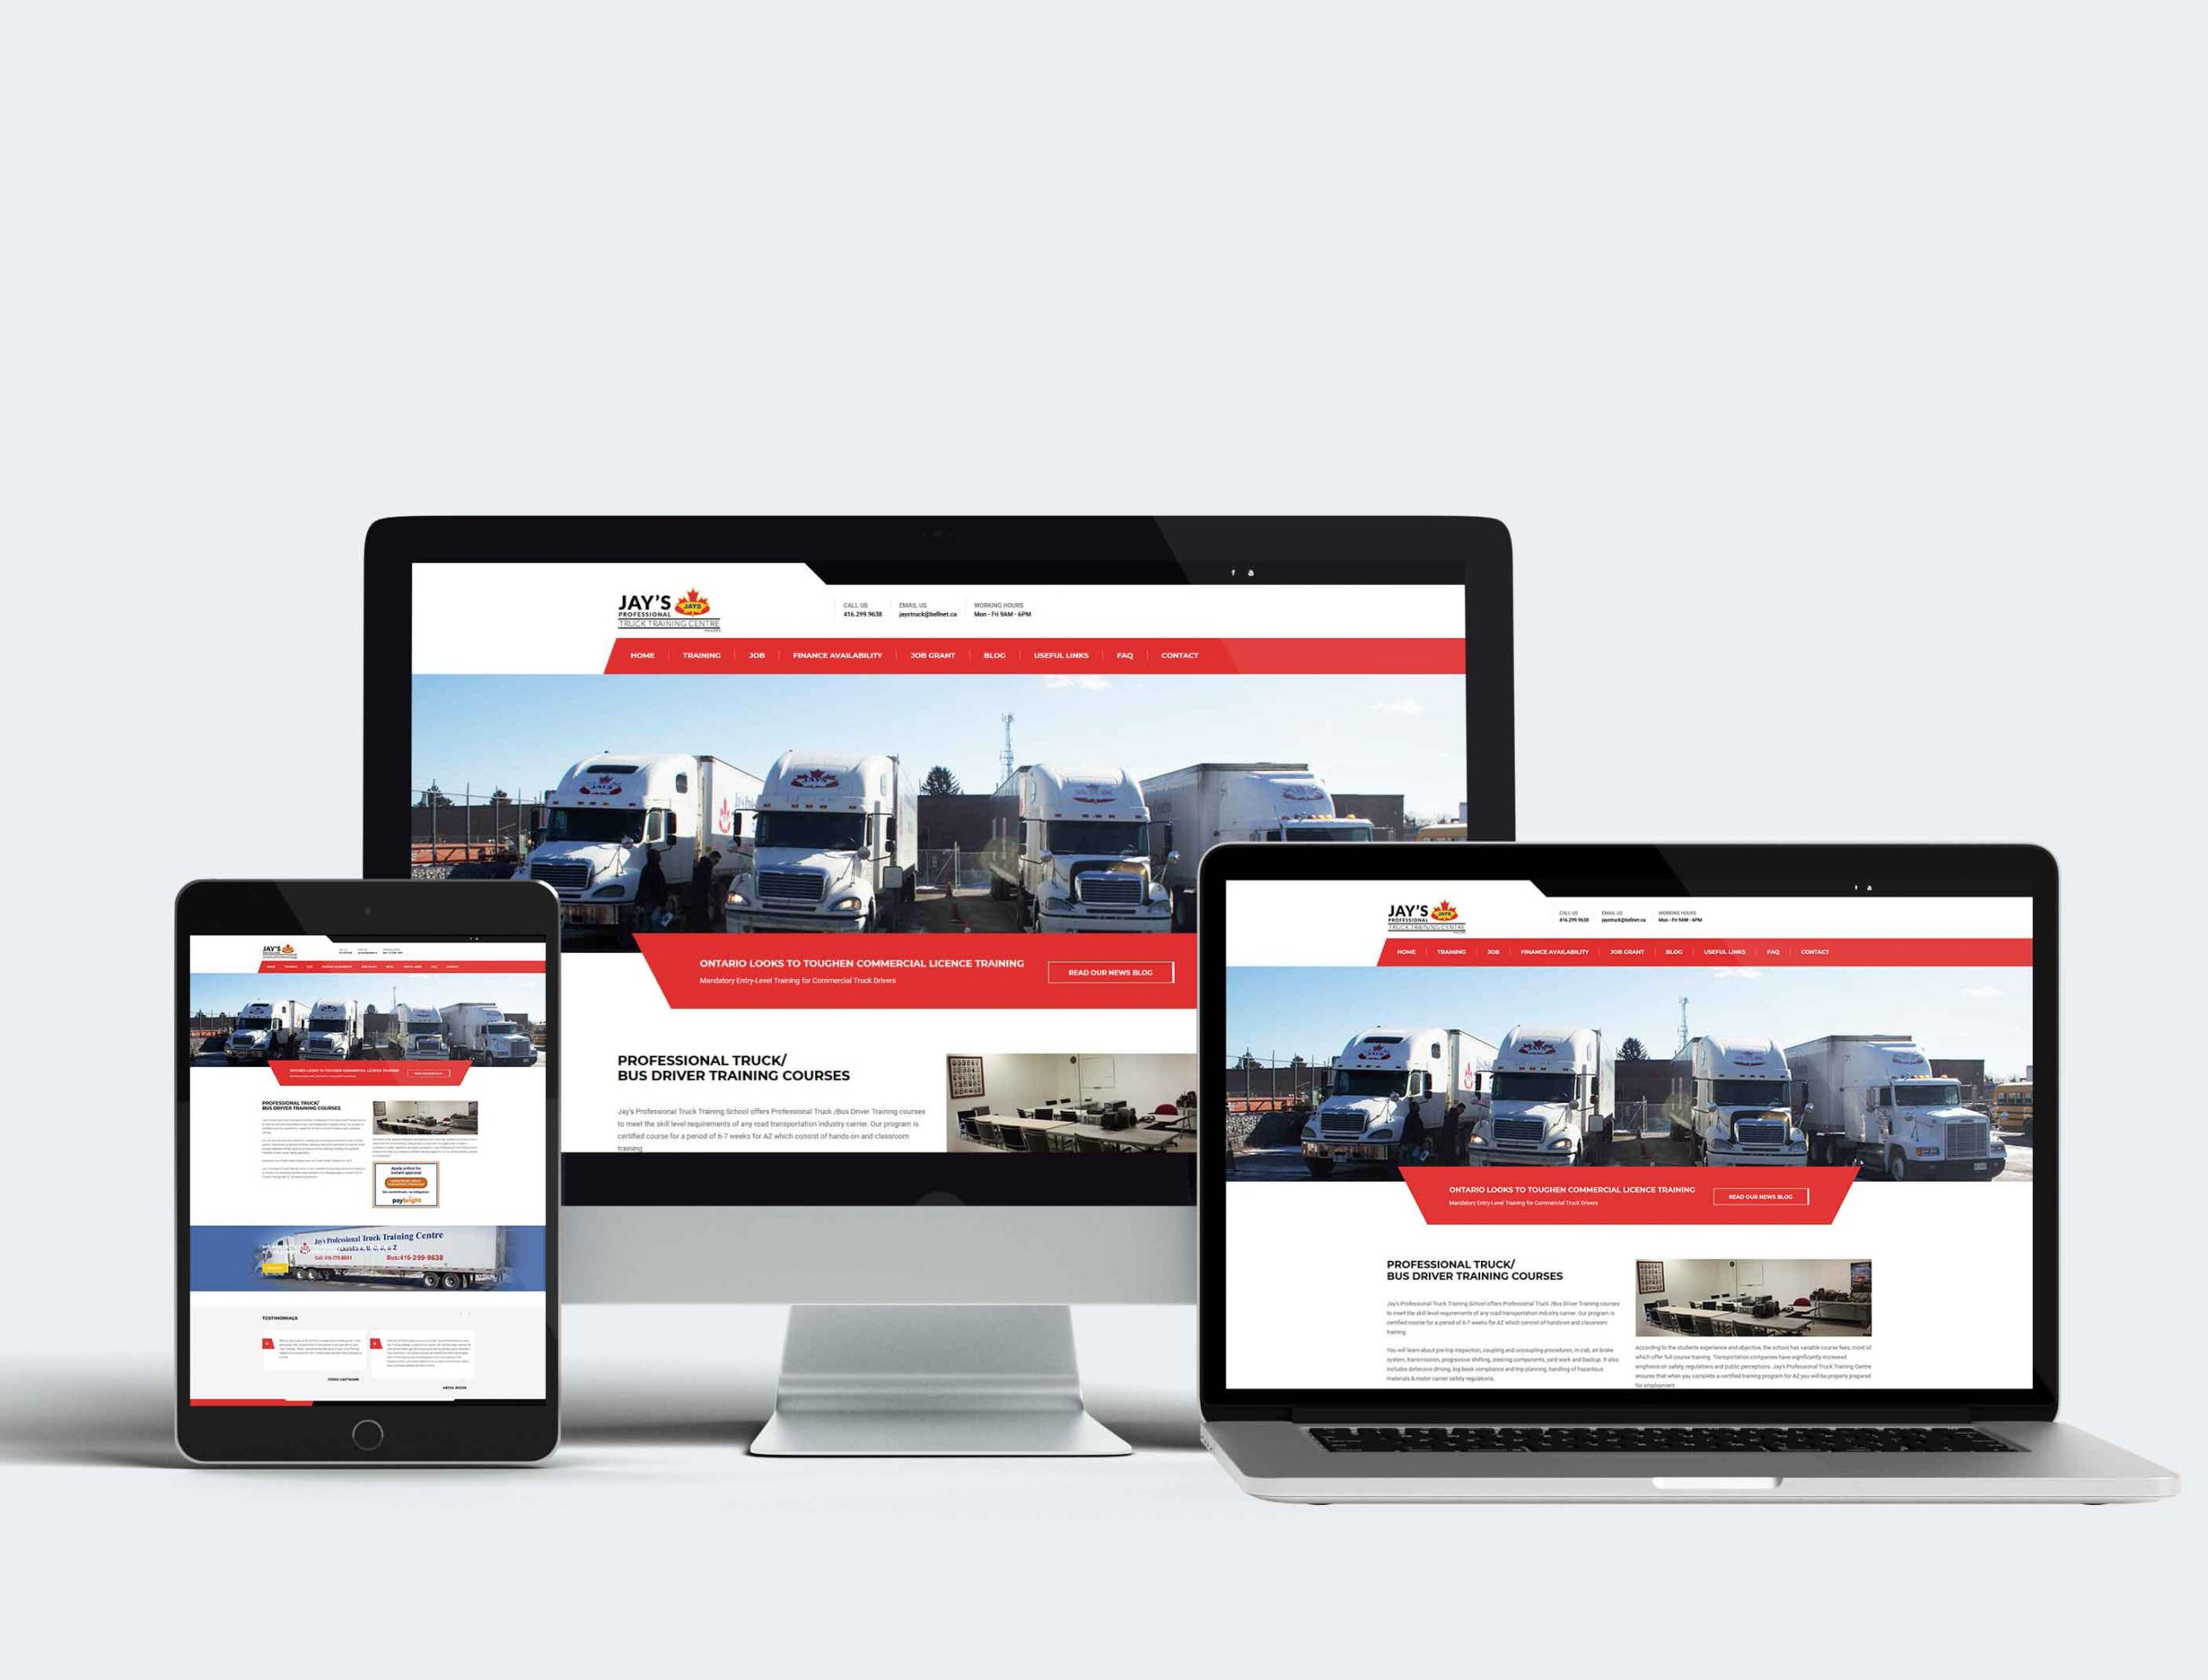 Jay's Professional Truck Training Centre